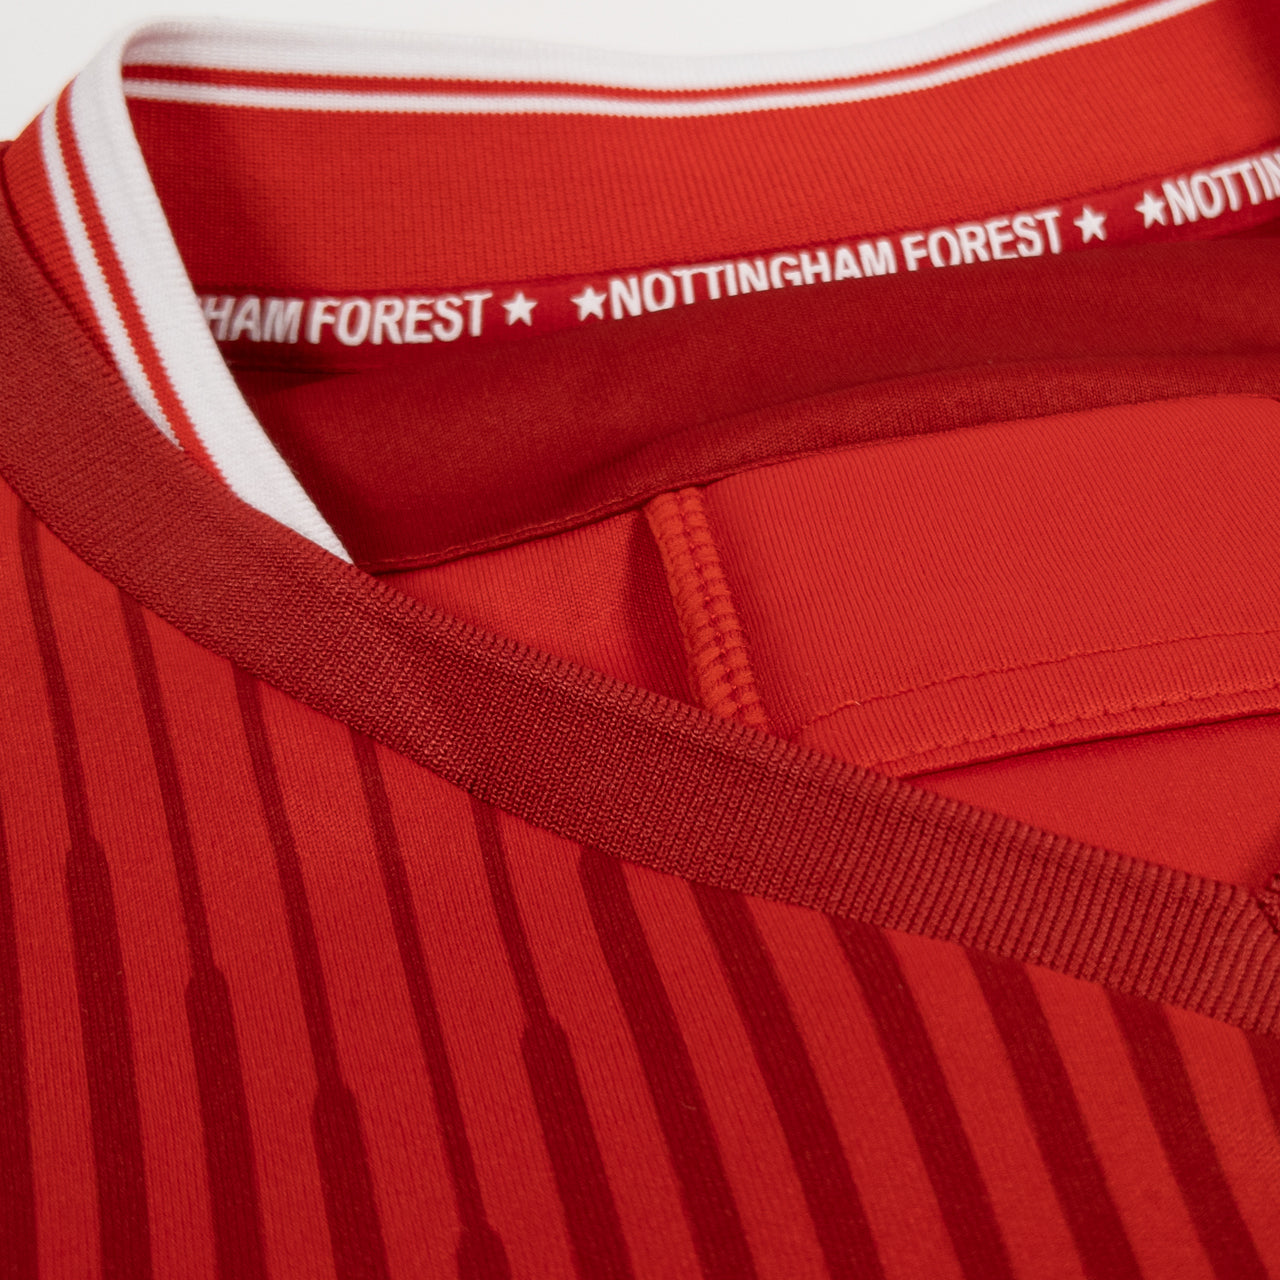 NFFC Mens Home Shirt 2019/20